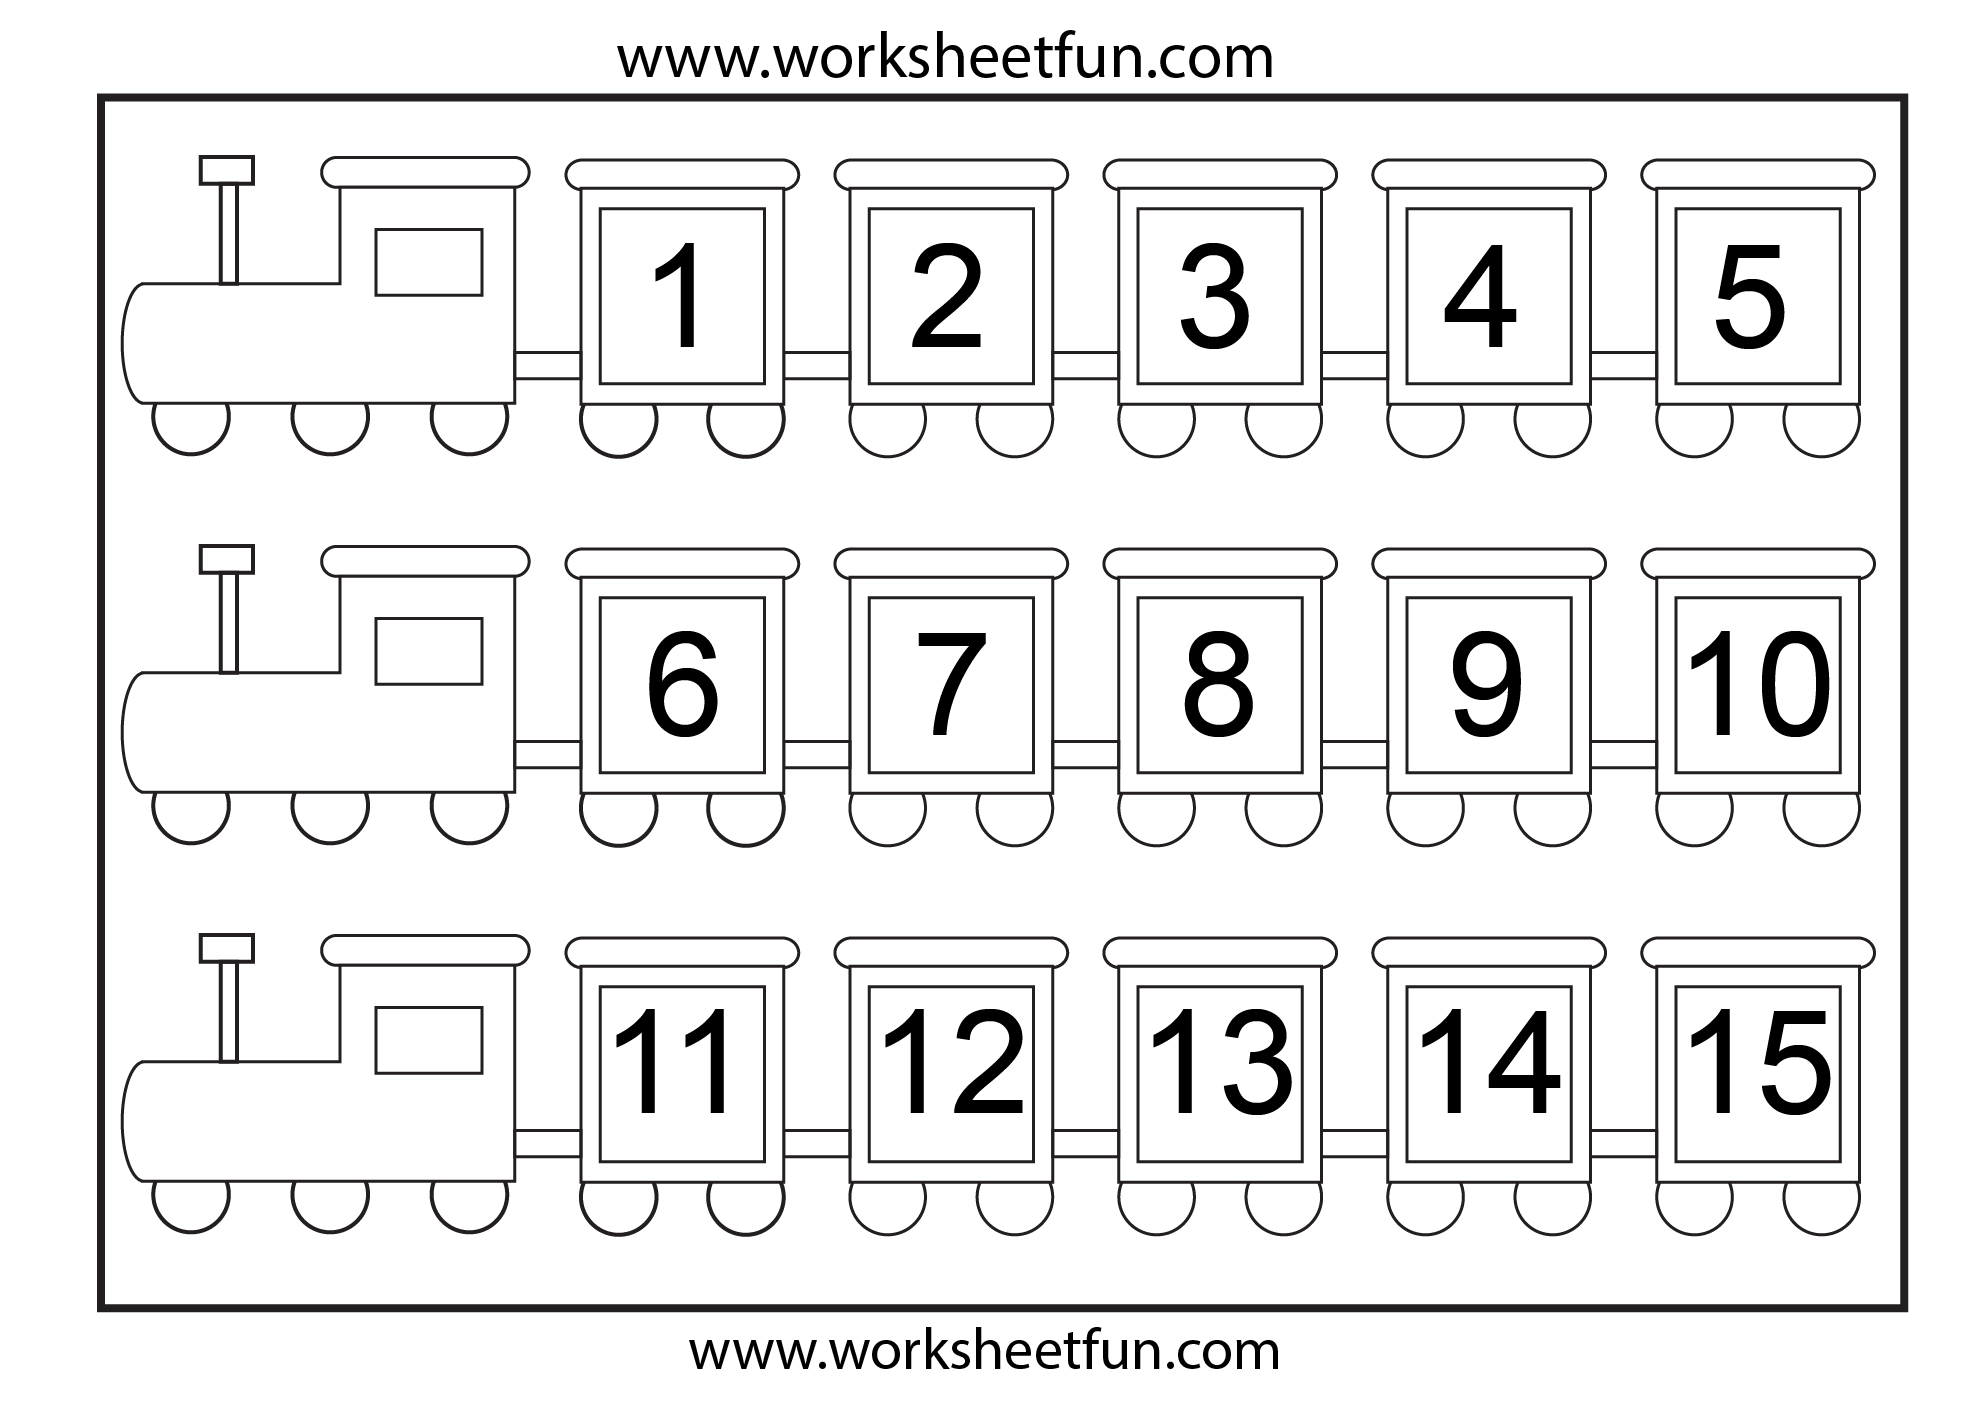 math worksheet : number practice sheets for kindergarten 1 20  k5 worksheets : Numbers 1 20 Worksheets For Kindergarten